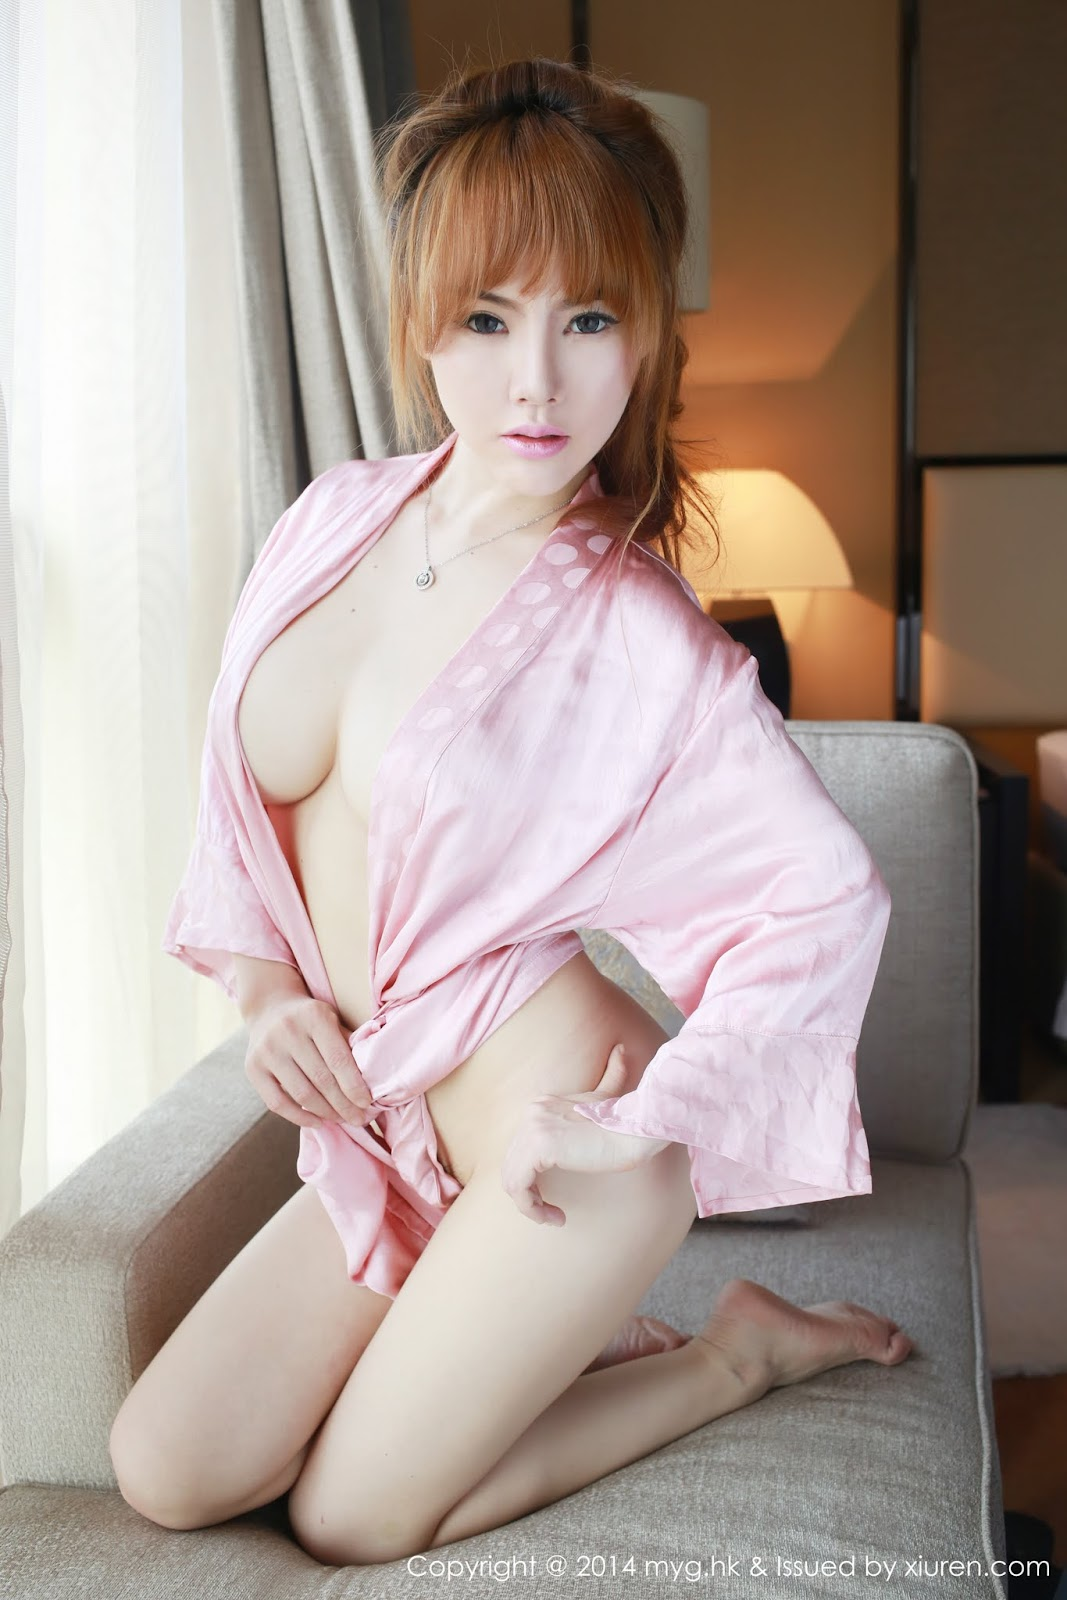 10009 - Photo Nude Hot MYGIRL VOL.32